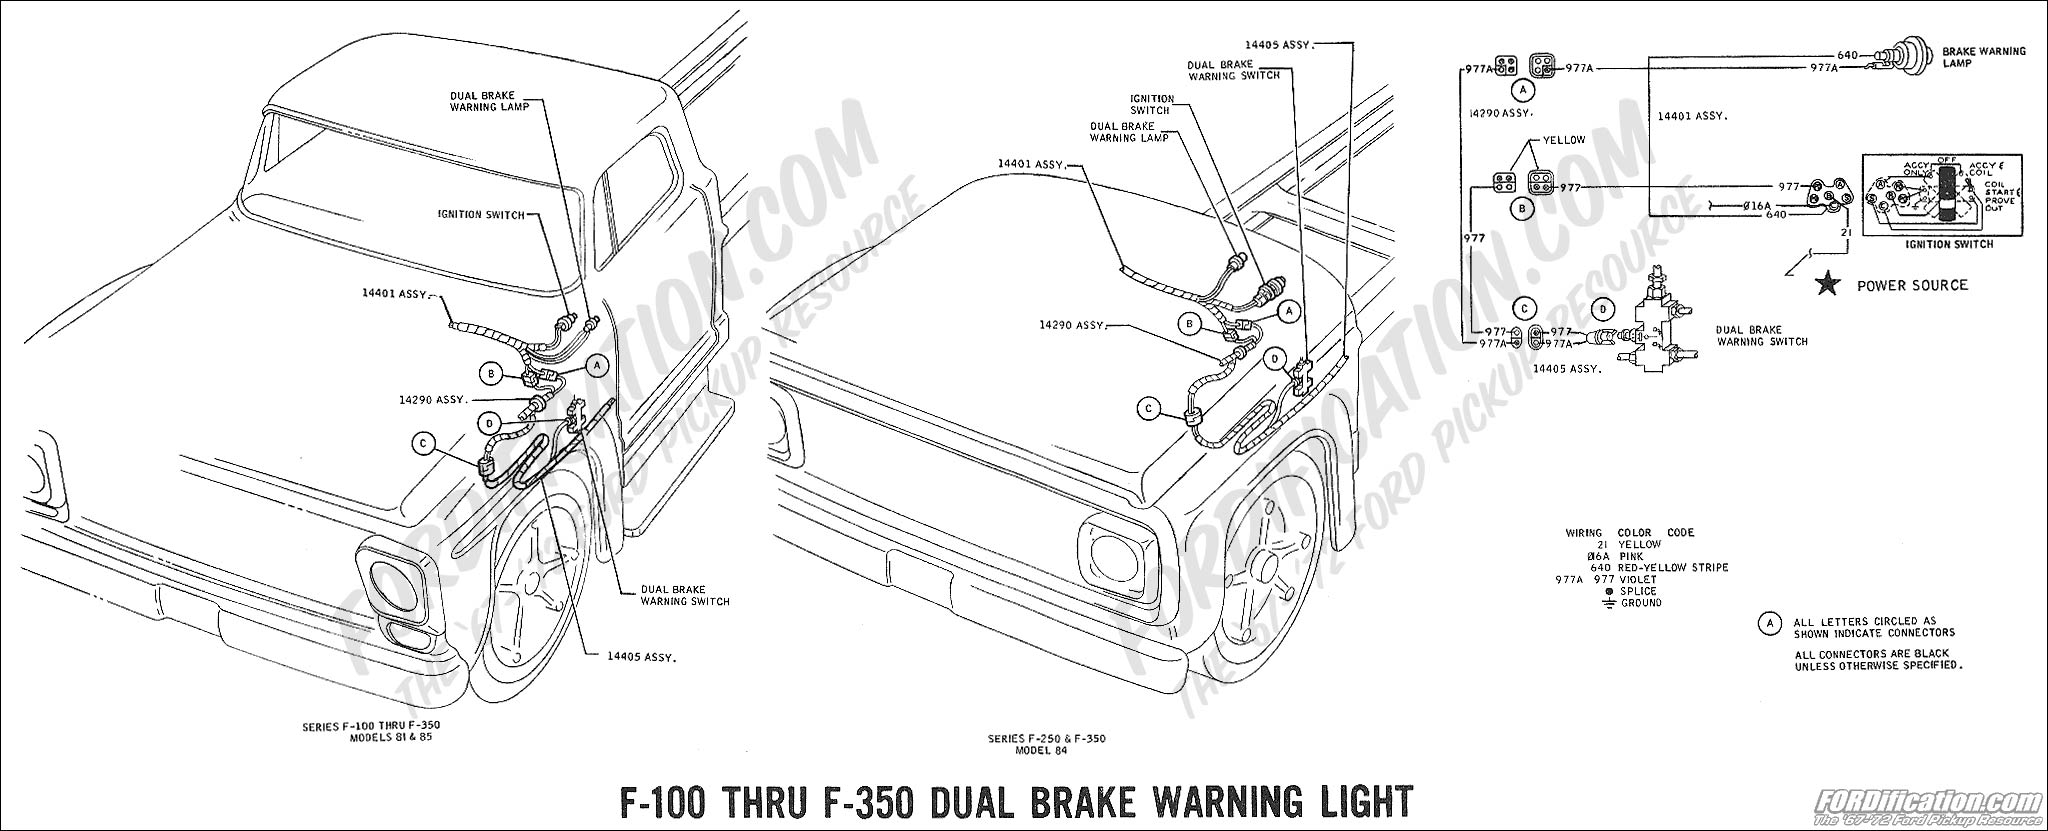 Ford Truck Technical Drawings And Schematics Section H Wiring Switch Schematic Bo Diagram 1969 F 100 Thru 350 Dual Brake Warning Light